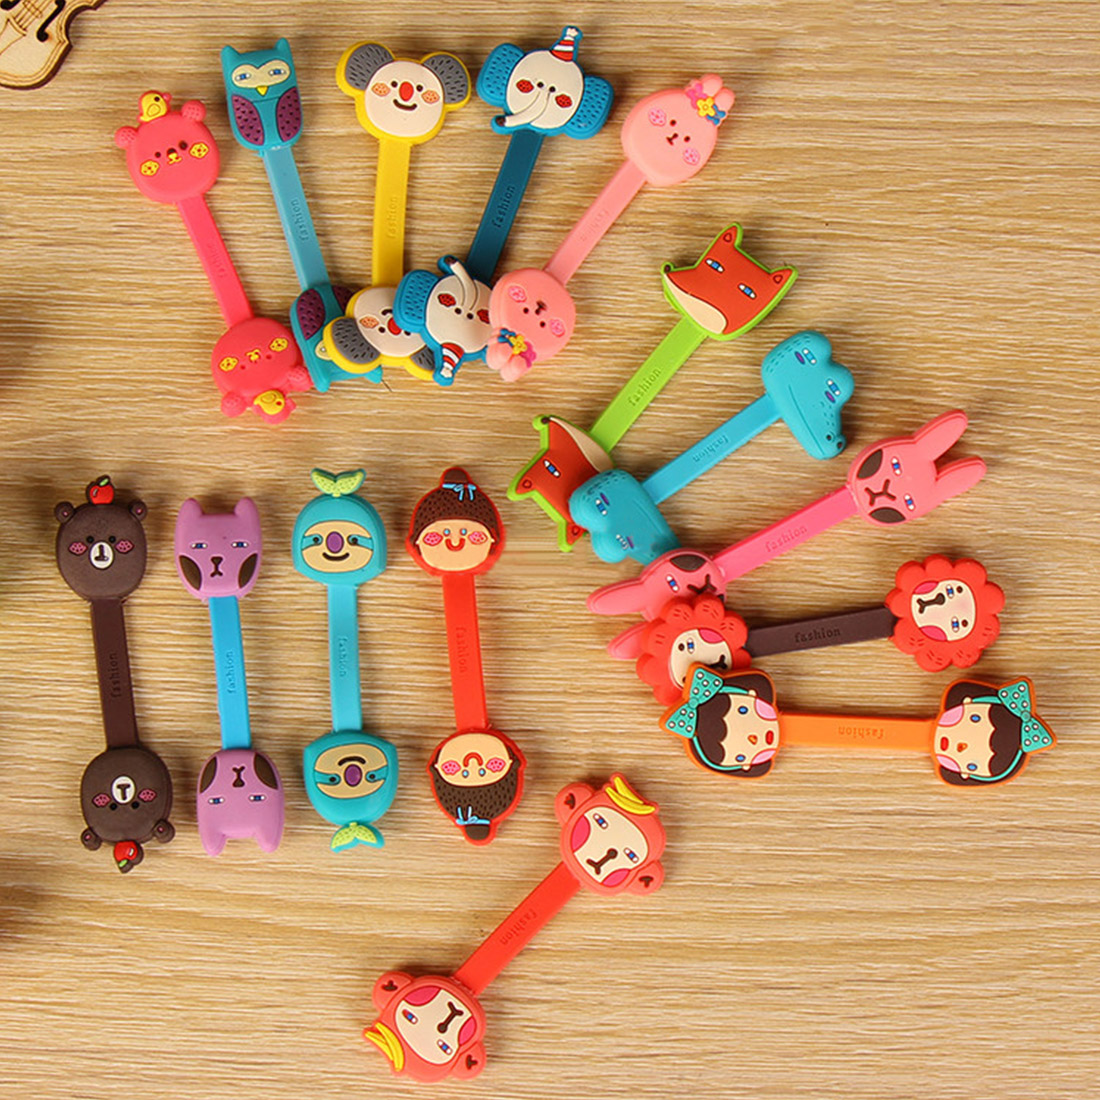 Cute button winder mobile phone headset cable organizer cartoon data cable storage hub Tidy Fastener